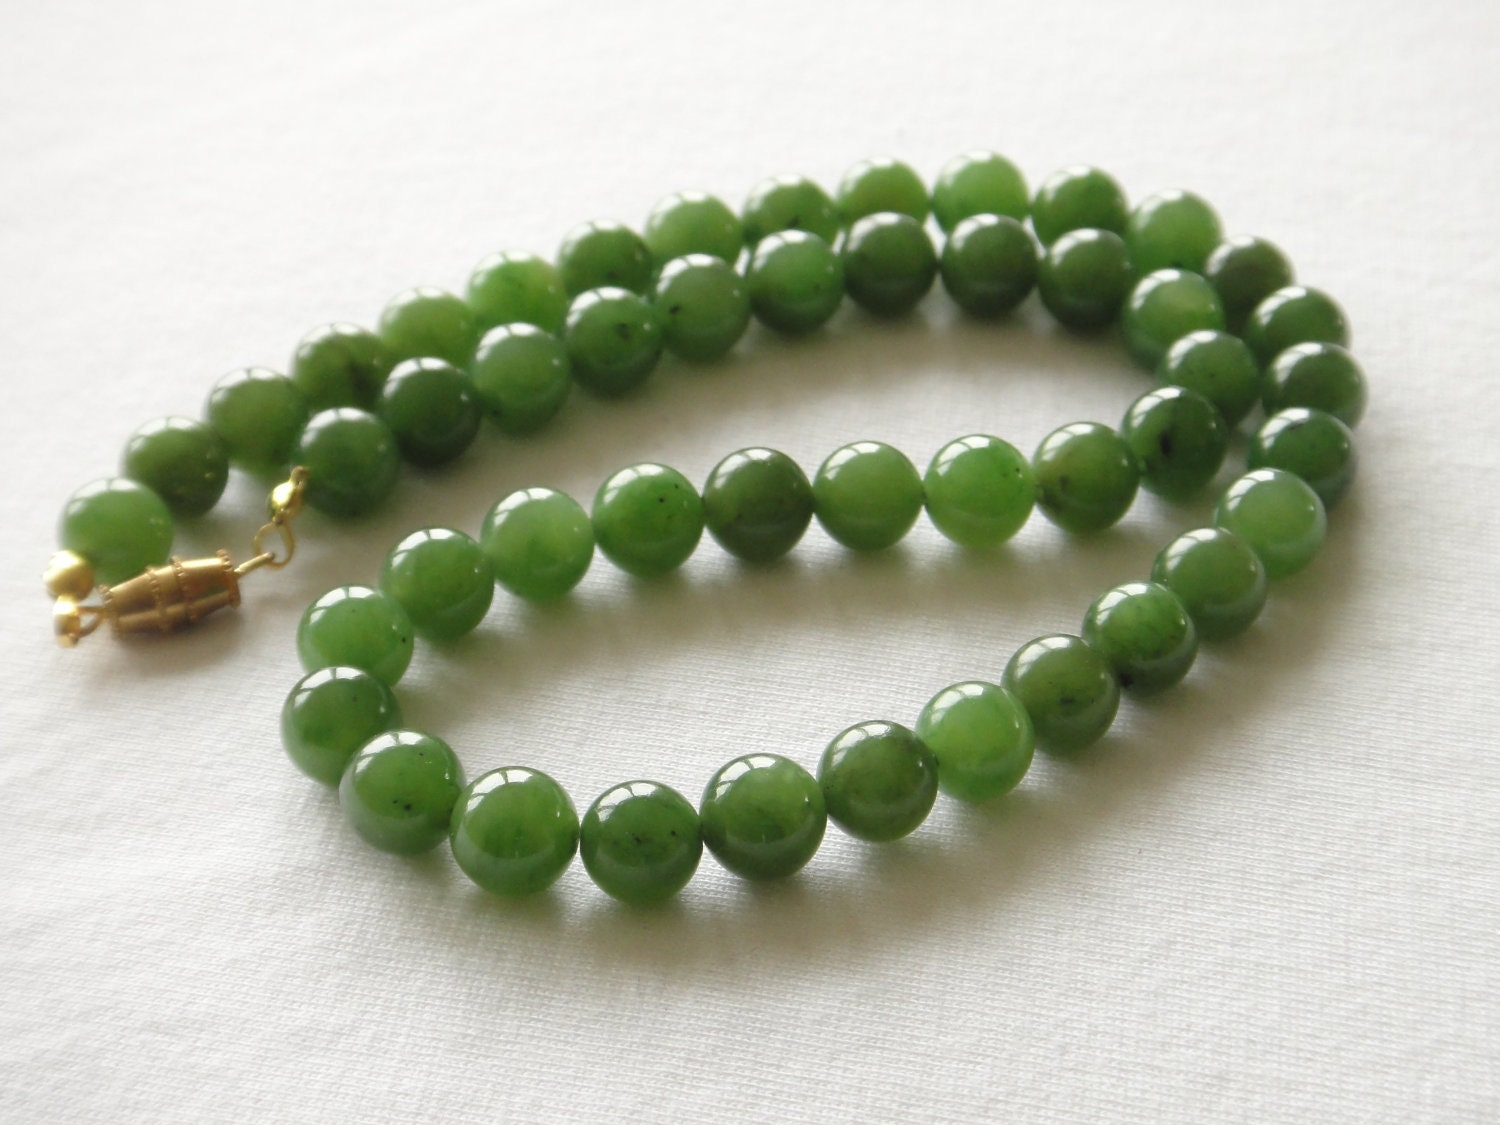 Vintage Jade Necklace 8mm Beads 20 Inches Grade A